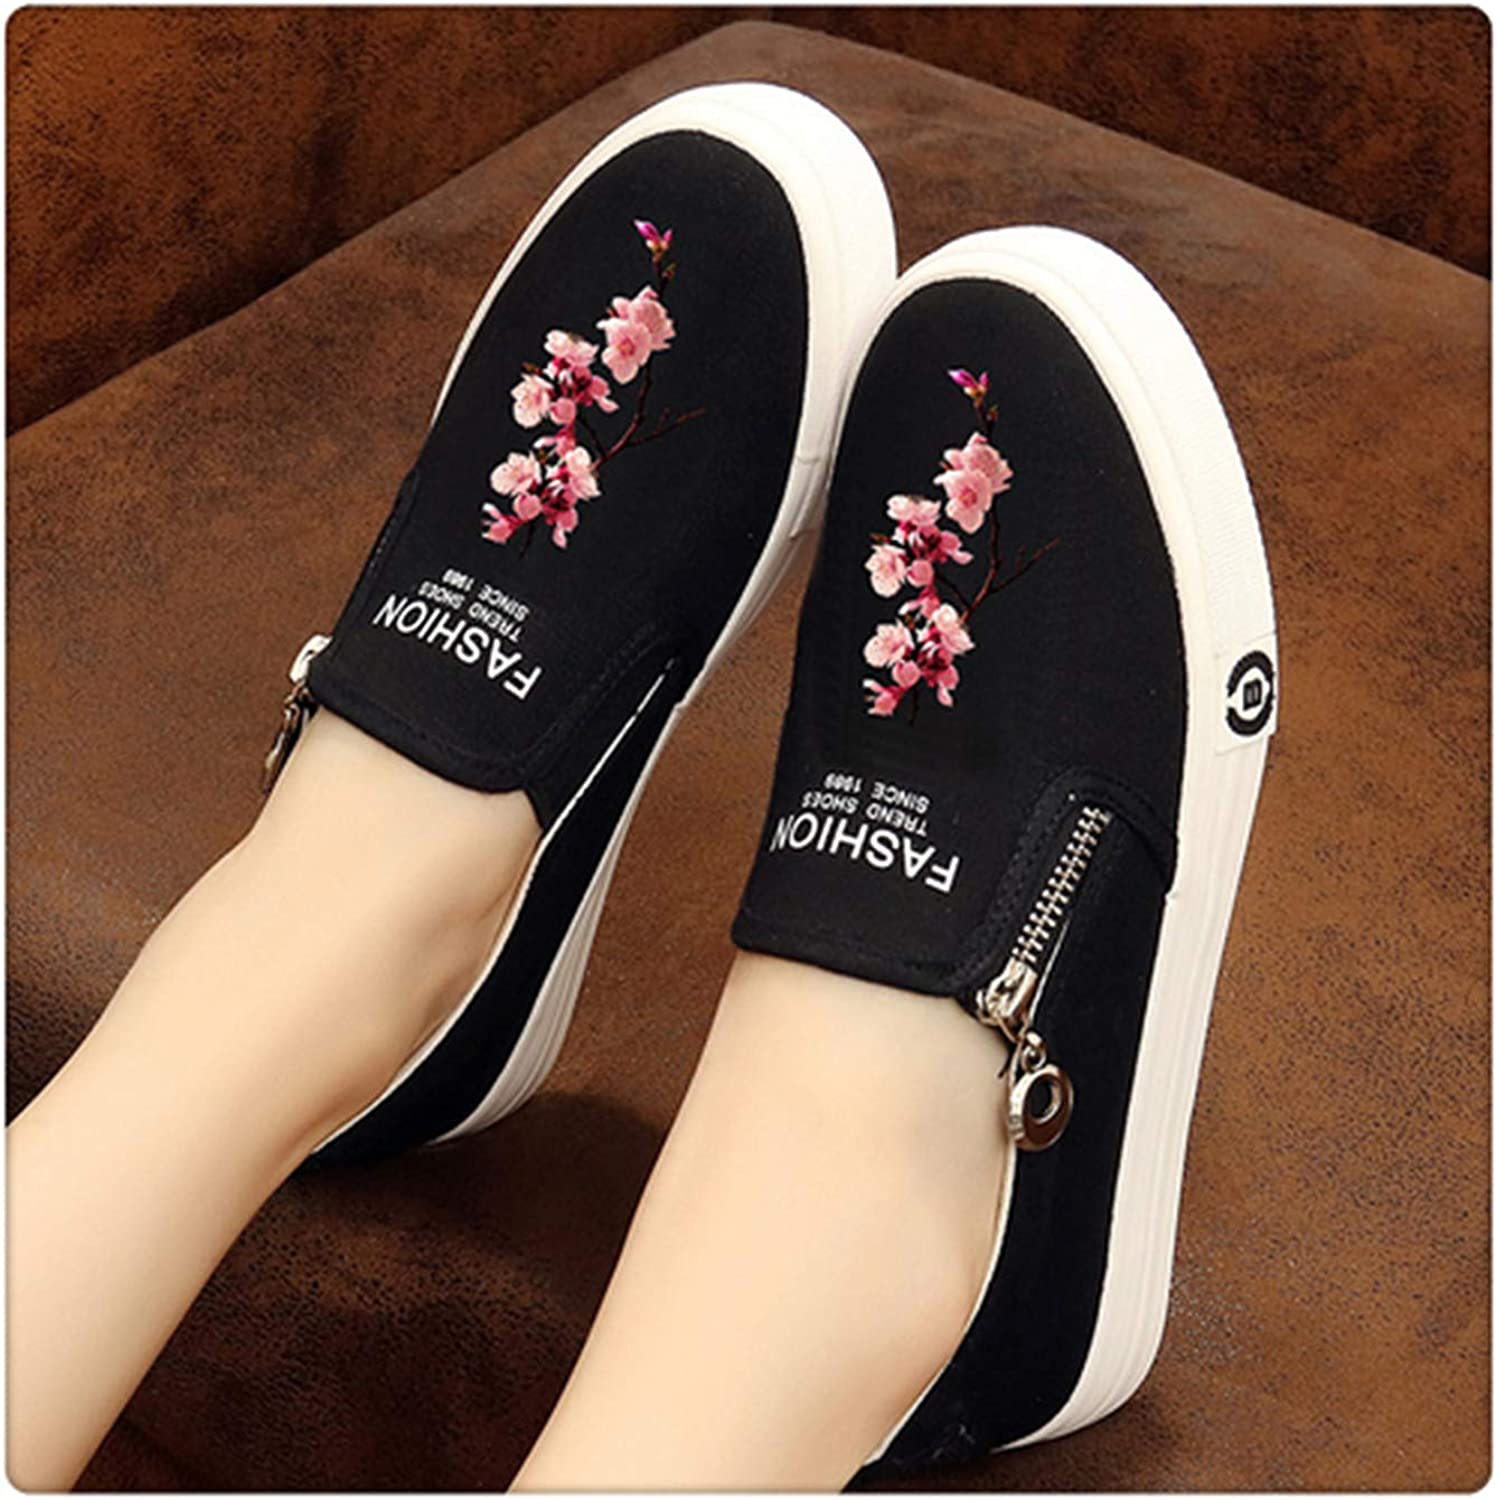 HAHUTG& Slip on Women's Platform shoes Summer 2019 Thick Heel Loafers Floral Canvas shoes Women Espadrilles White Black HEI taohua 4